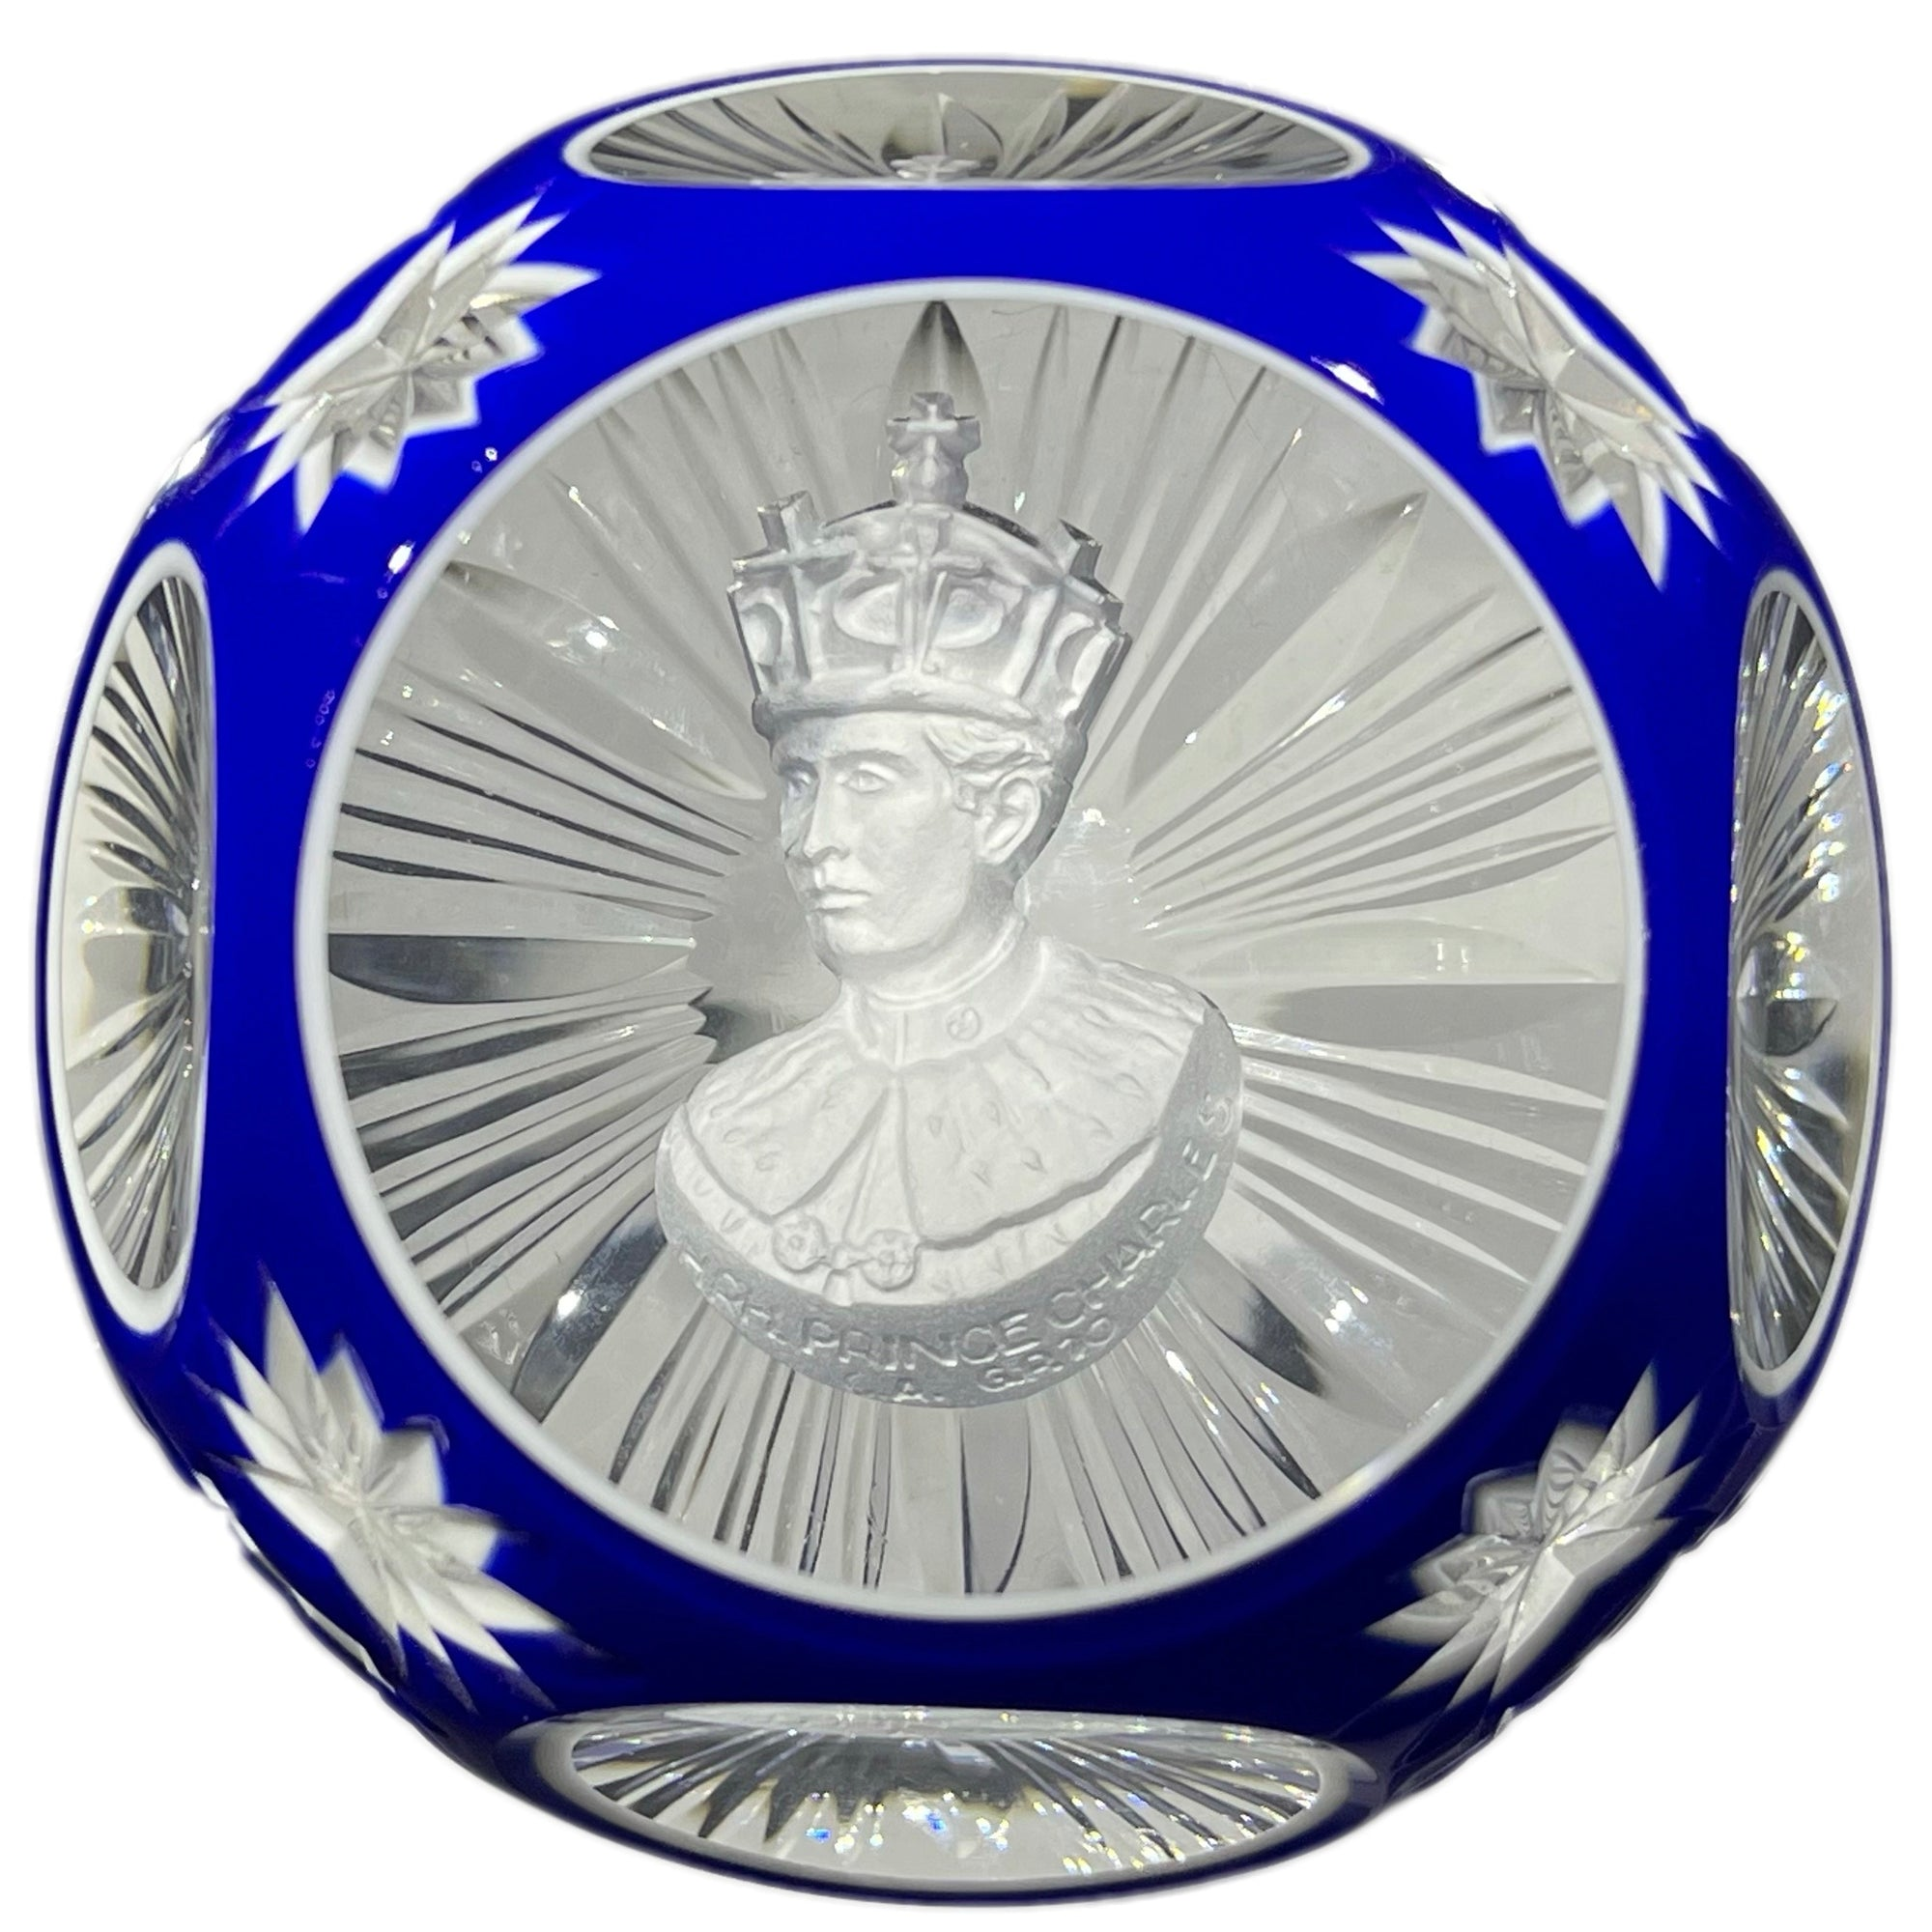 Cristal d'Albret Prince Charles Coronation Sulphide Fancy Cut Blue Double Overlay Glass Paperweight